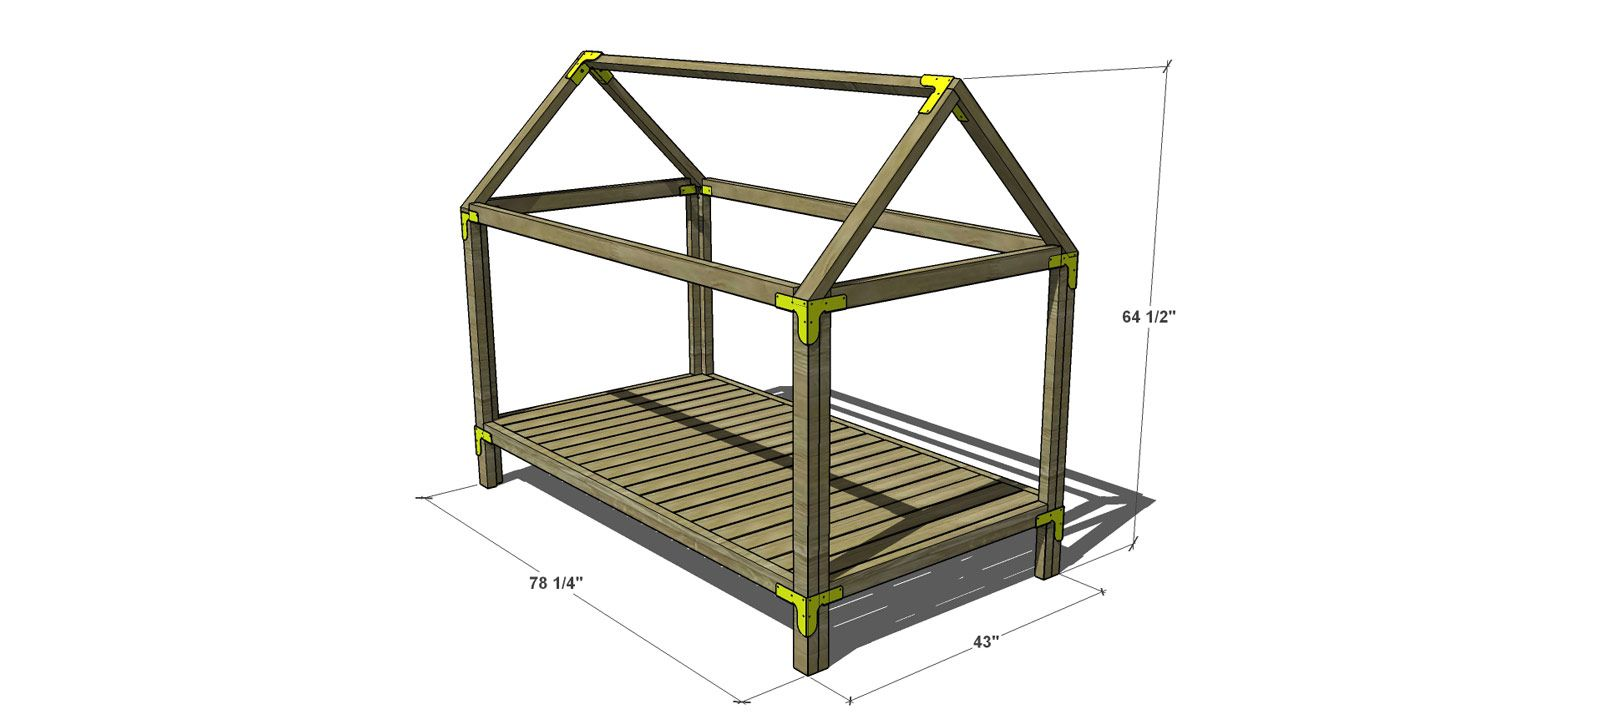 dimensions for free diy furniture plans how to build an indoor dimensions for free diy furniture plans how to build an indoor outdoor house bed